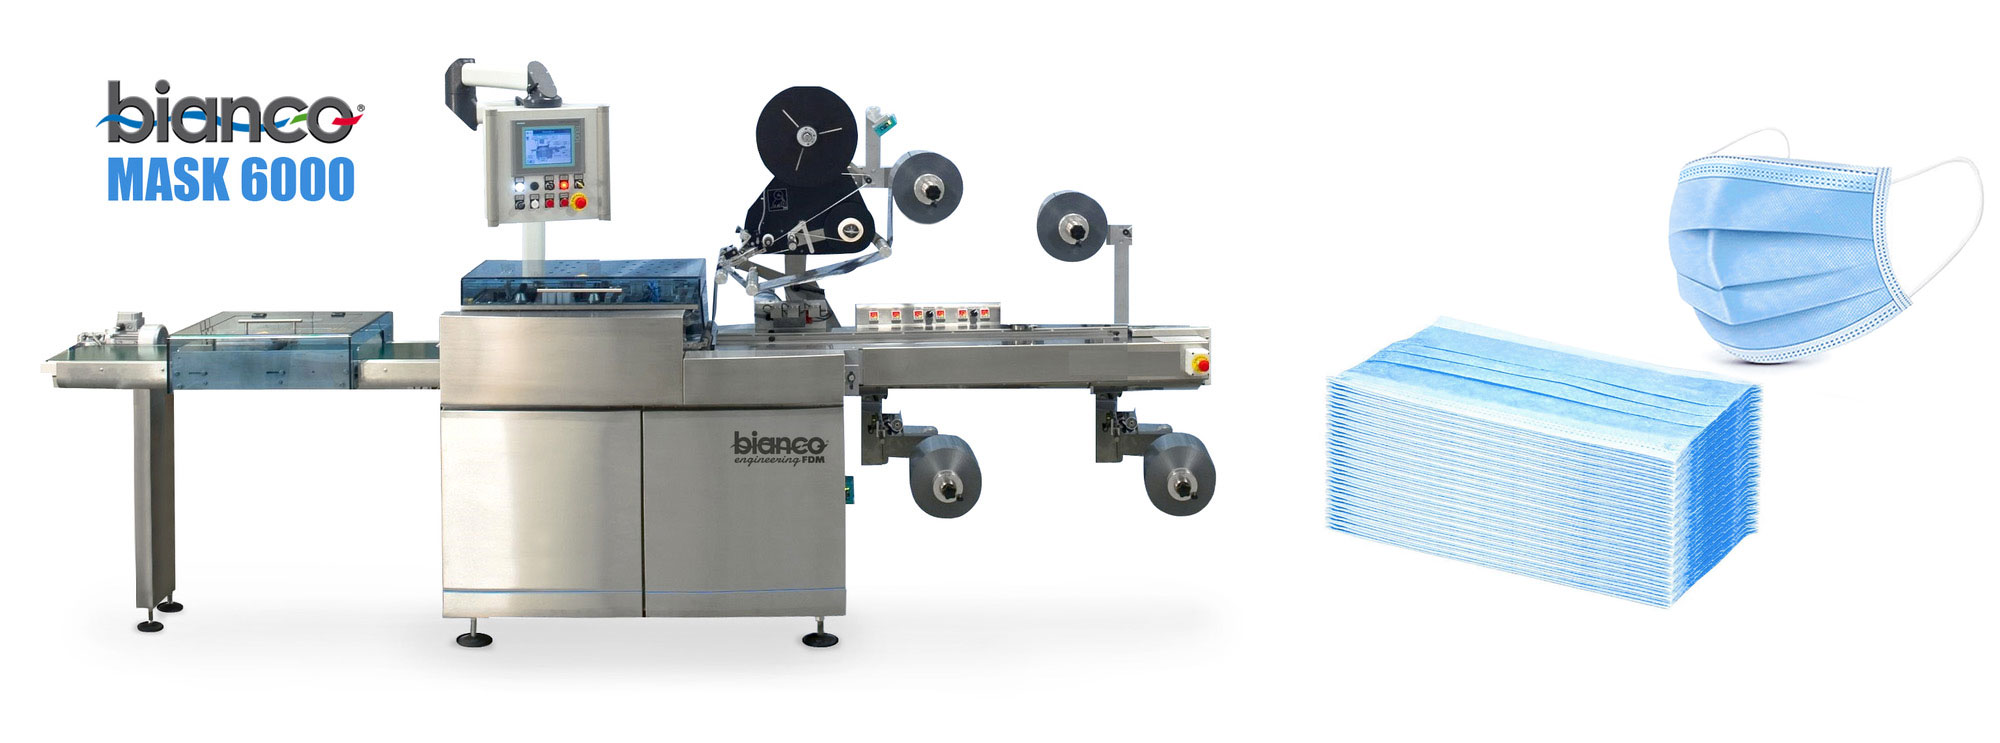 BIANCO SPA STARTS THE PRODUCTION OF MACHINERY FOR SURGICAL MASKS